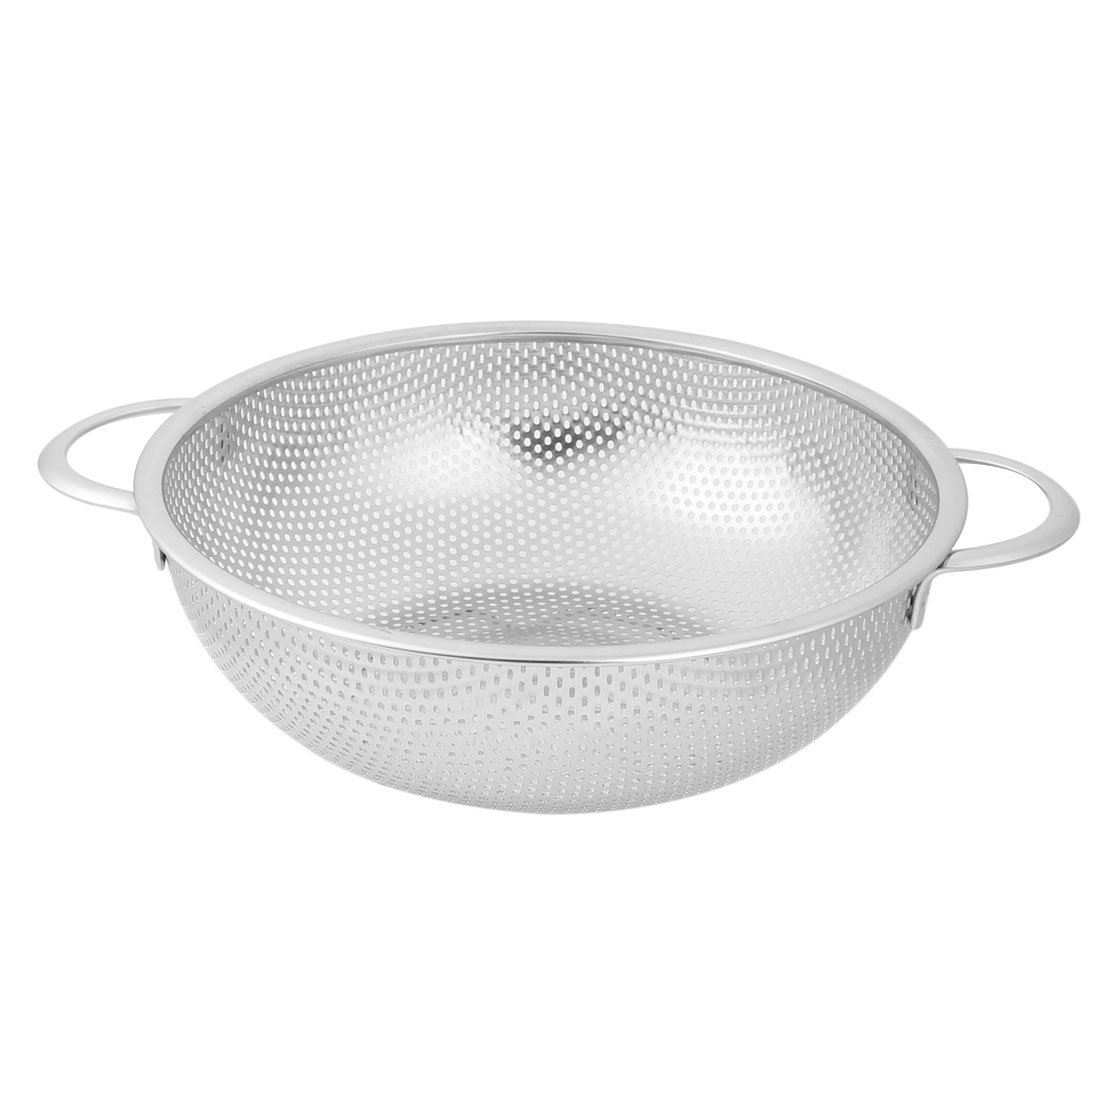 uxcell Stainless Steel Household Vegetable Fruit Washing Bowl Colander 22.5cm Diameter Silver Tone